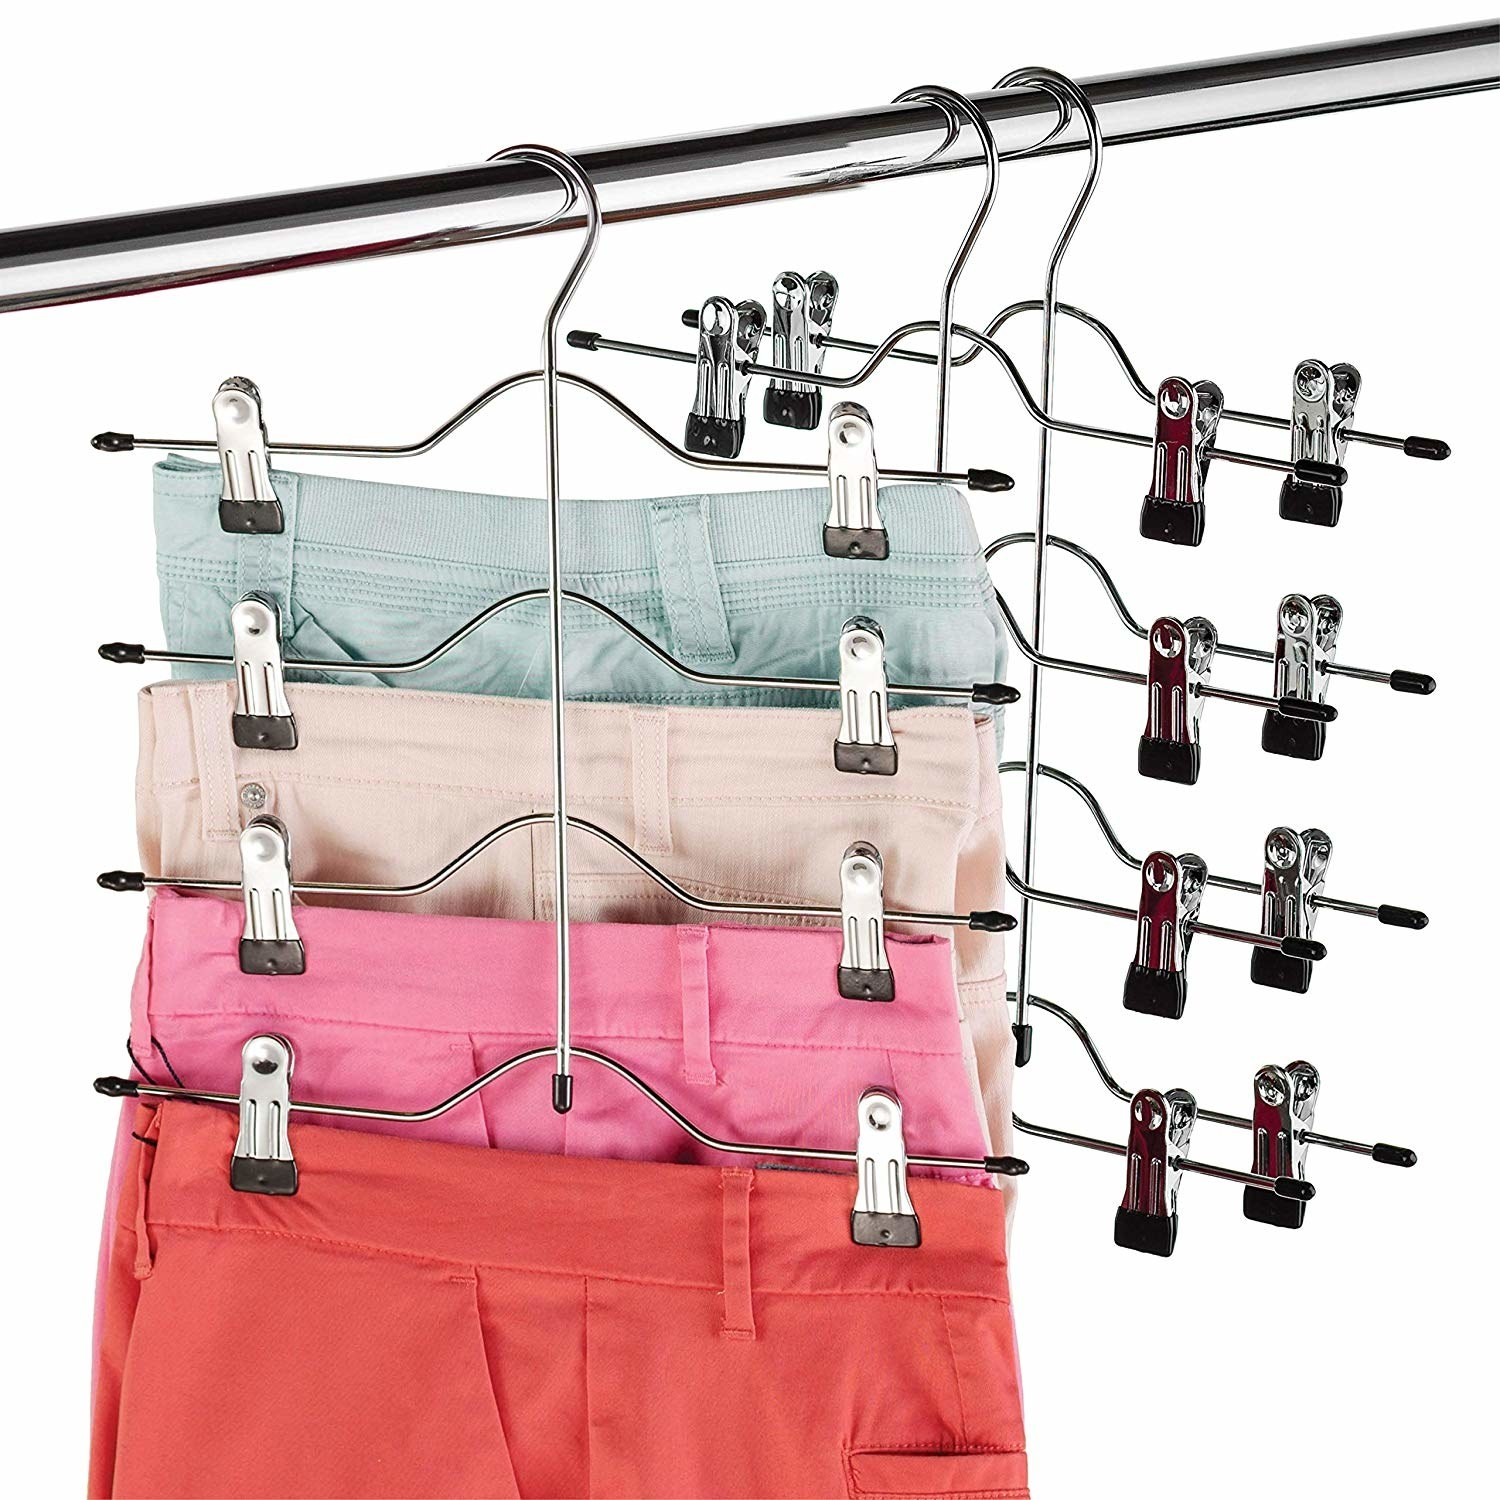 Four pairs of pants hanging from a hanger with clips on the ends